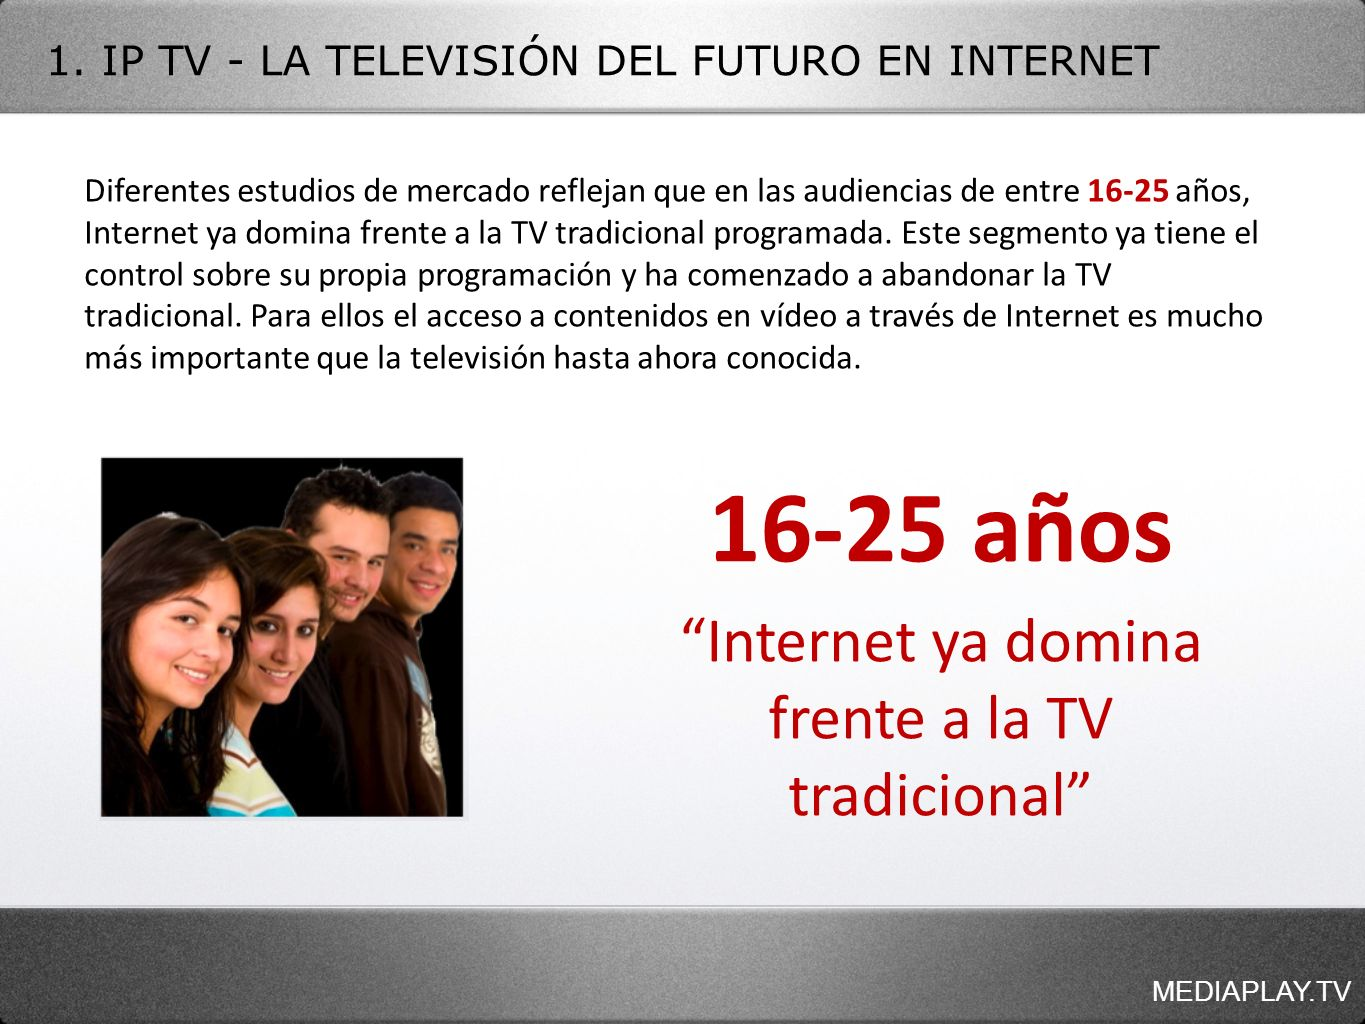 Internet ya domina frente a la TV tradicional